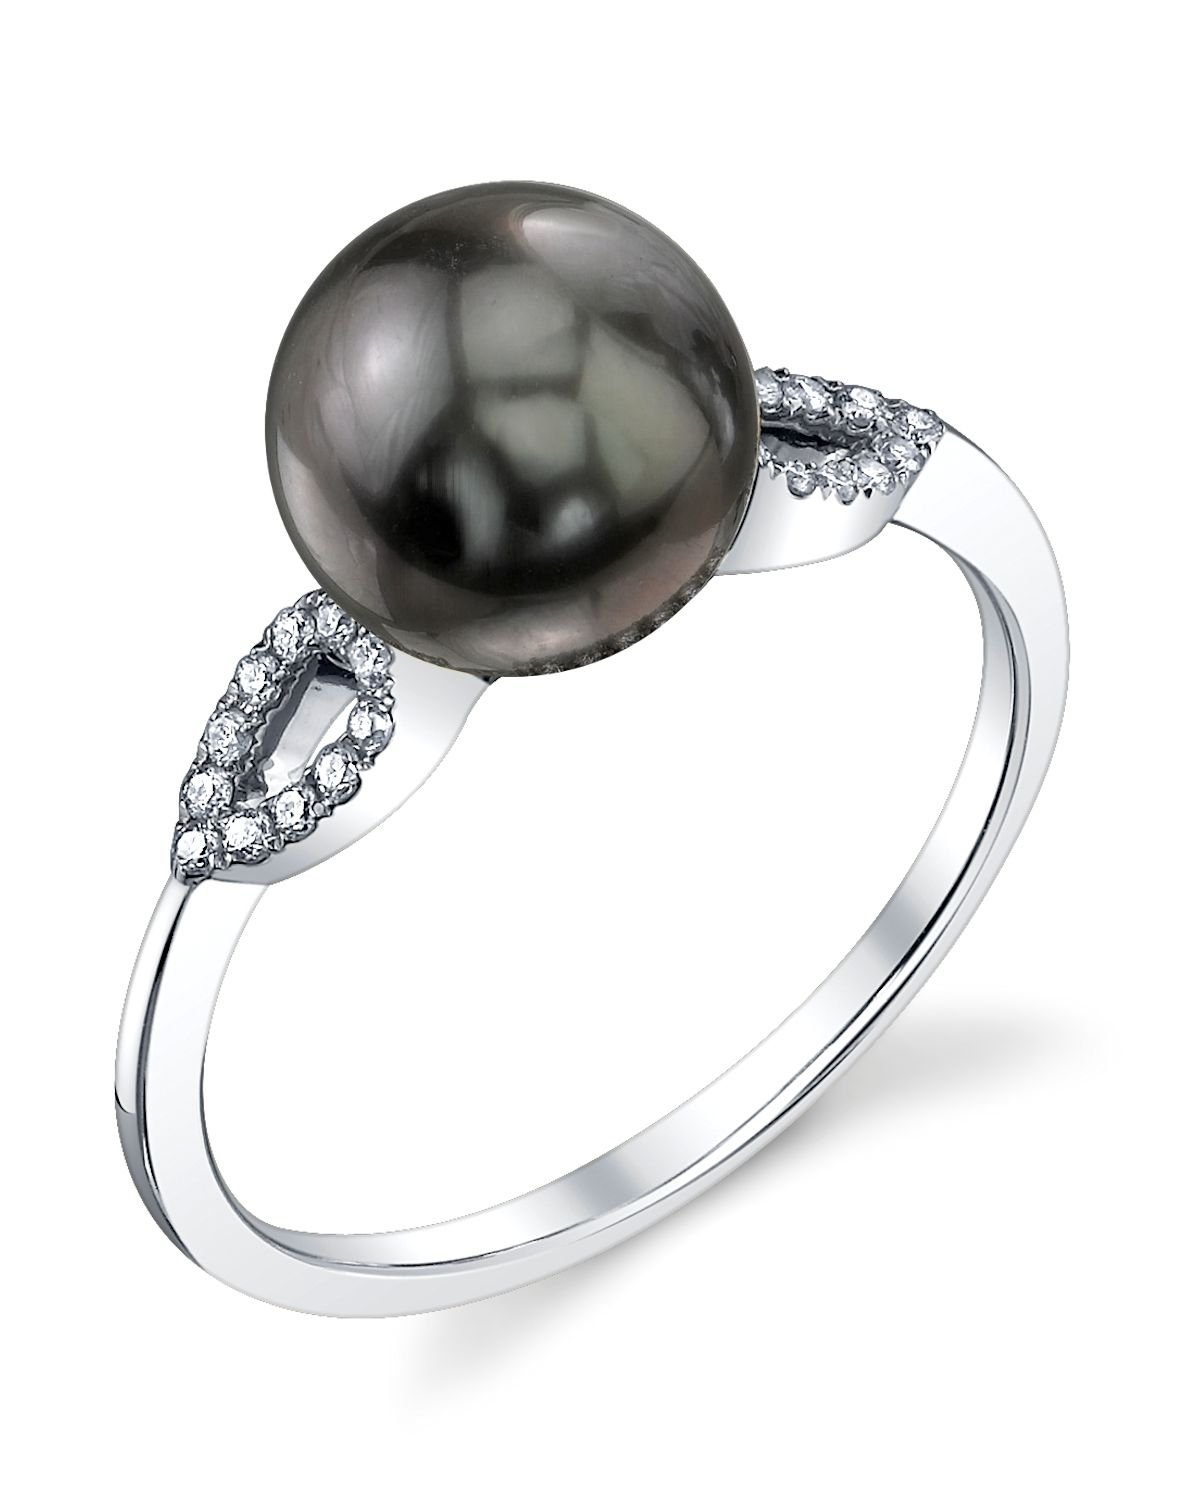 8mm Tahitian South Sea Cultured Pearl & Diamond Callie Ring in 14K Gold